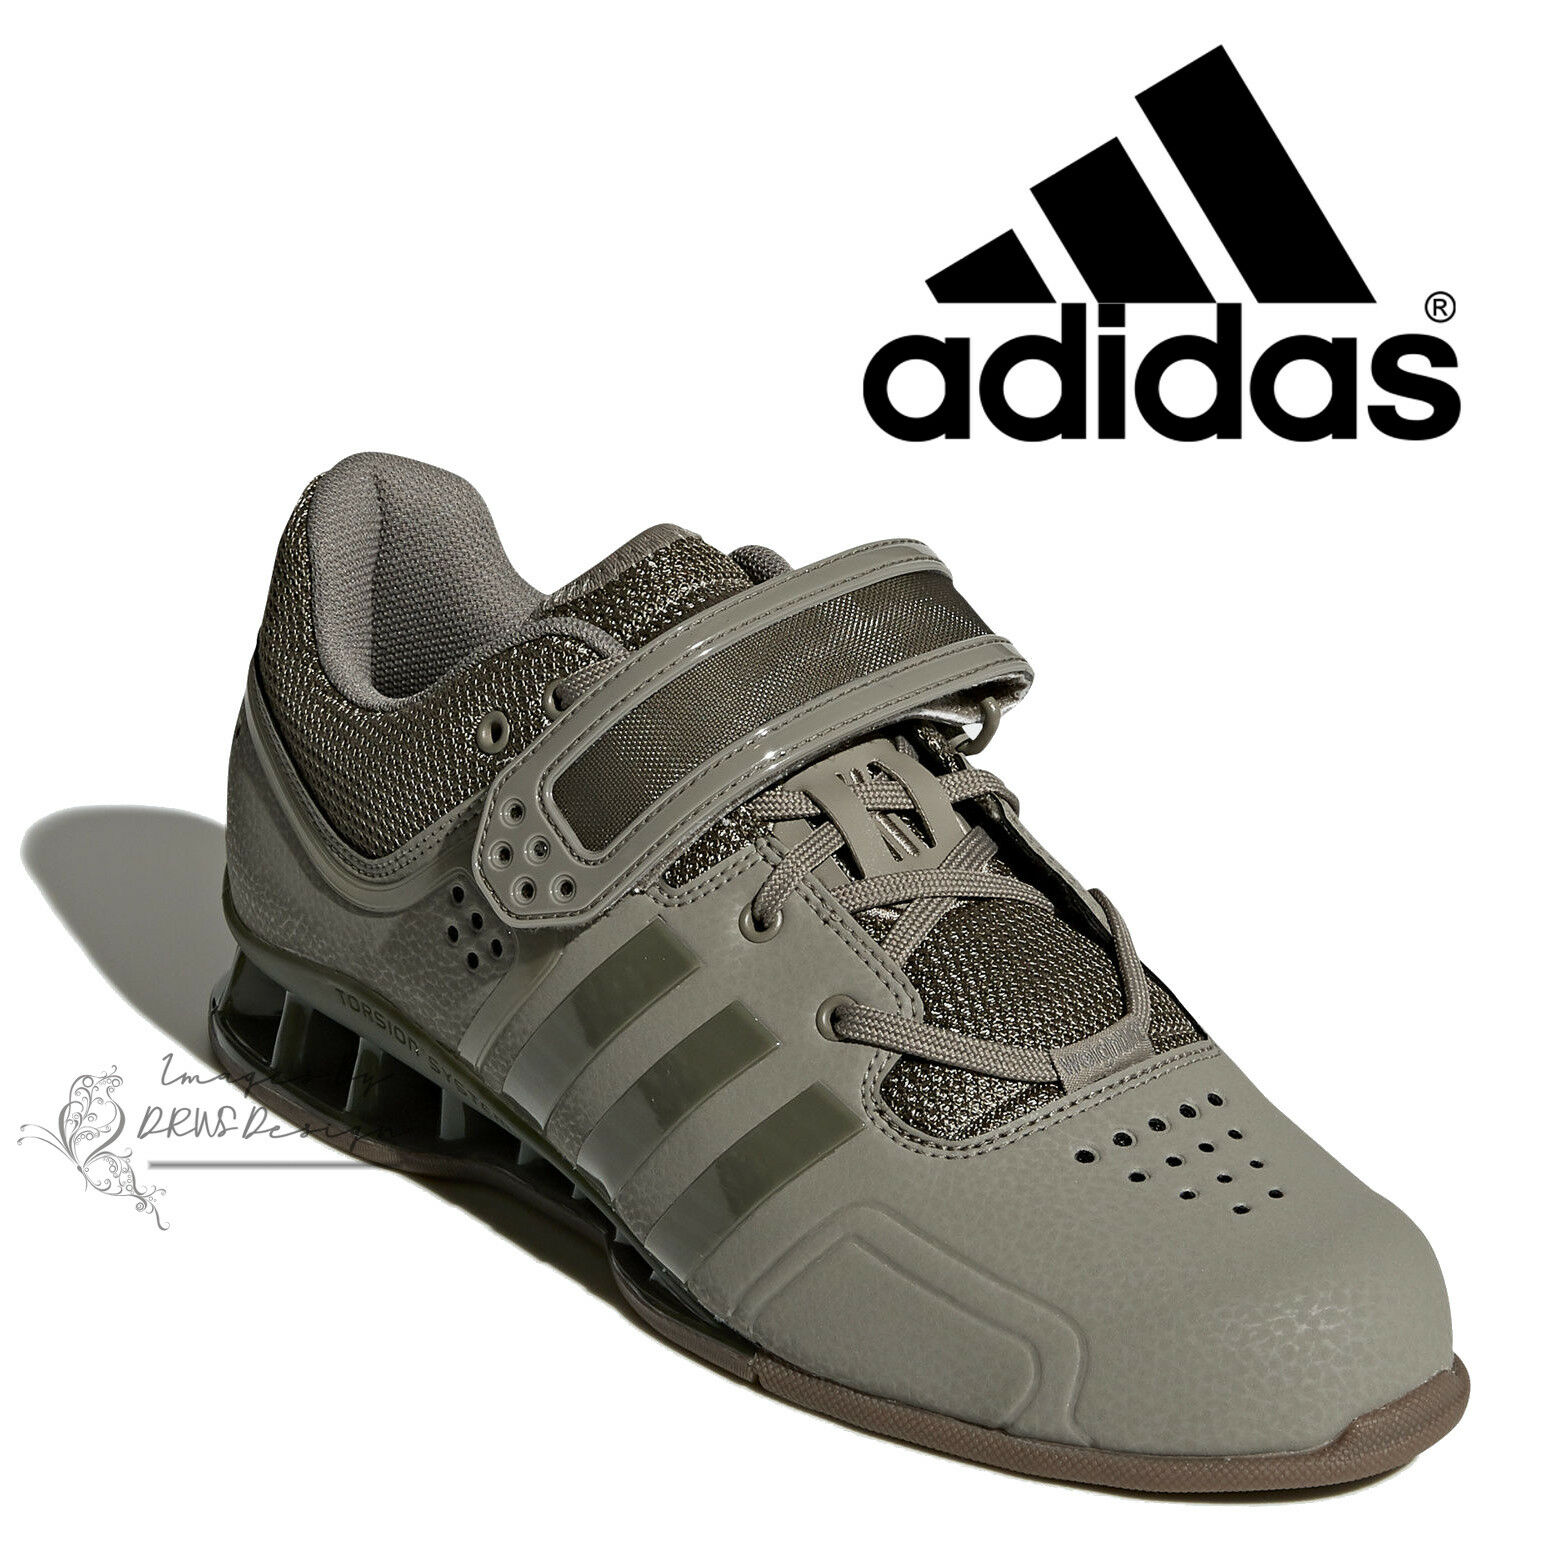 adidas adiPower Men's Pro Weightlifting Shoes Cargo Gym Trainers DA9874